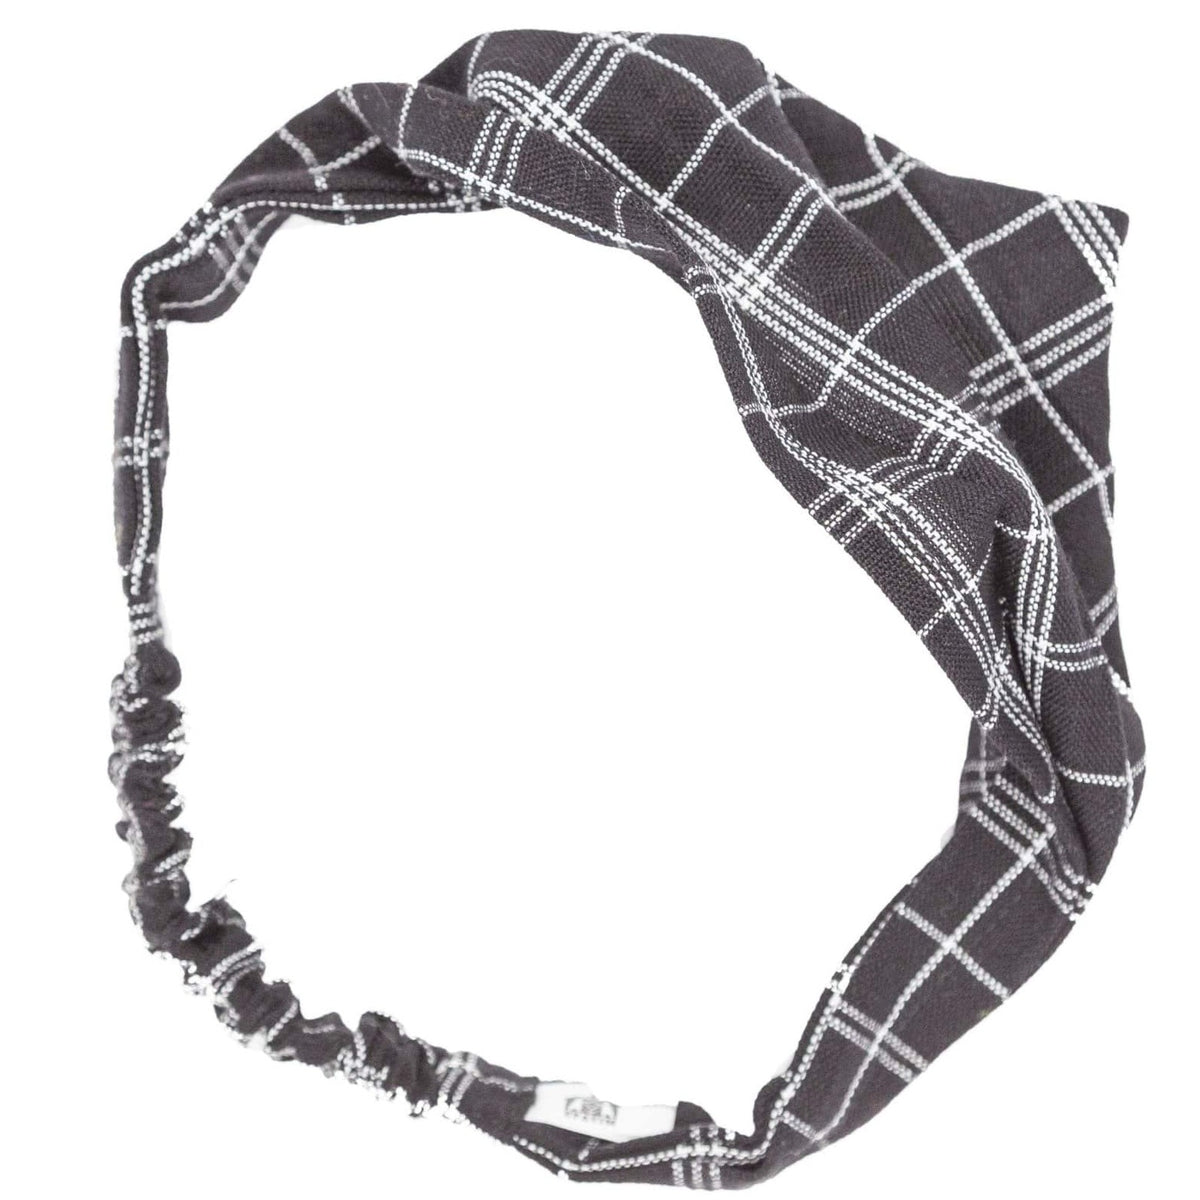 Handmade Boho Headband Black and White Plaid